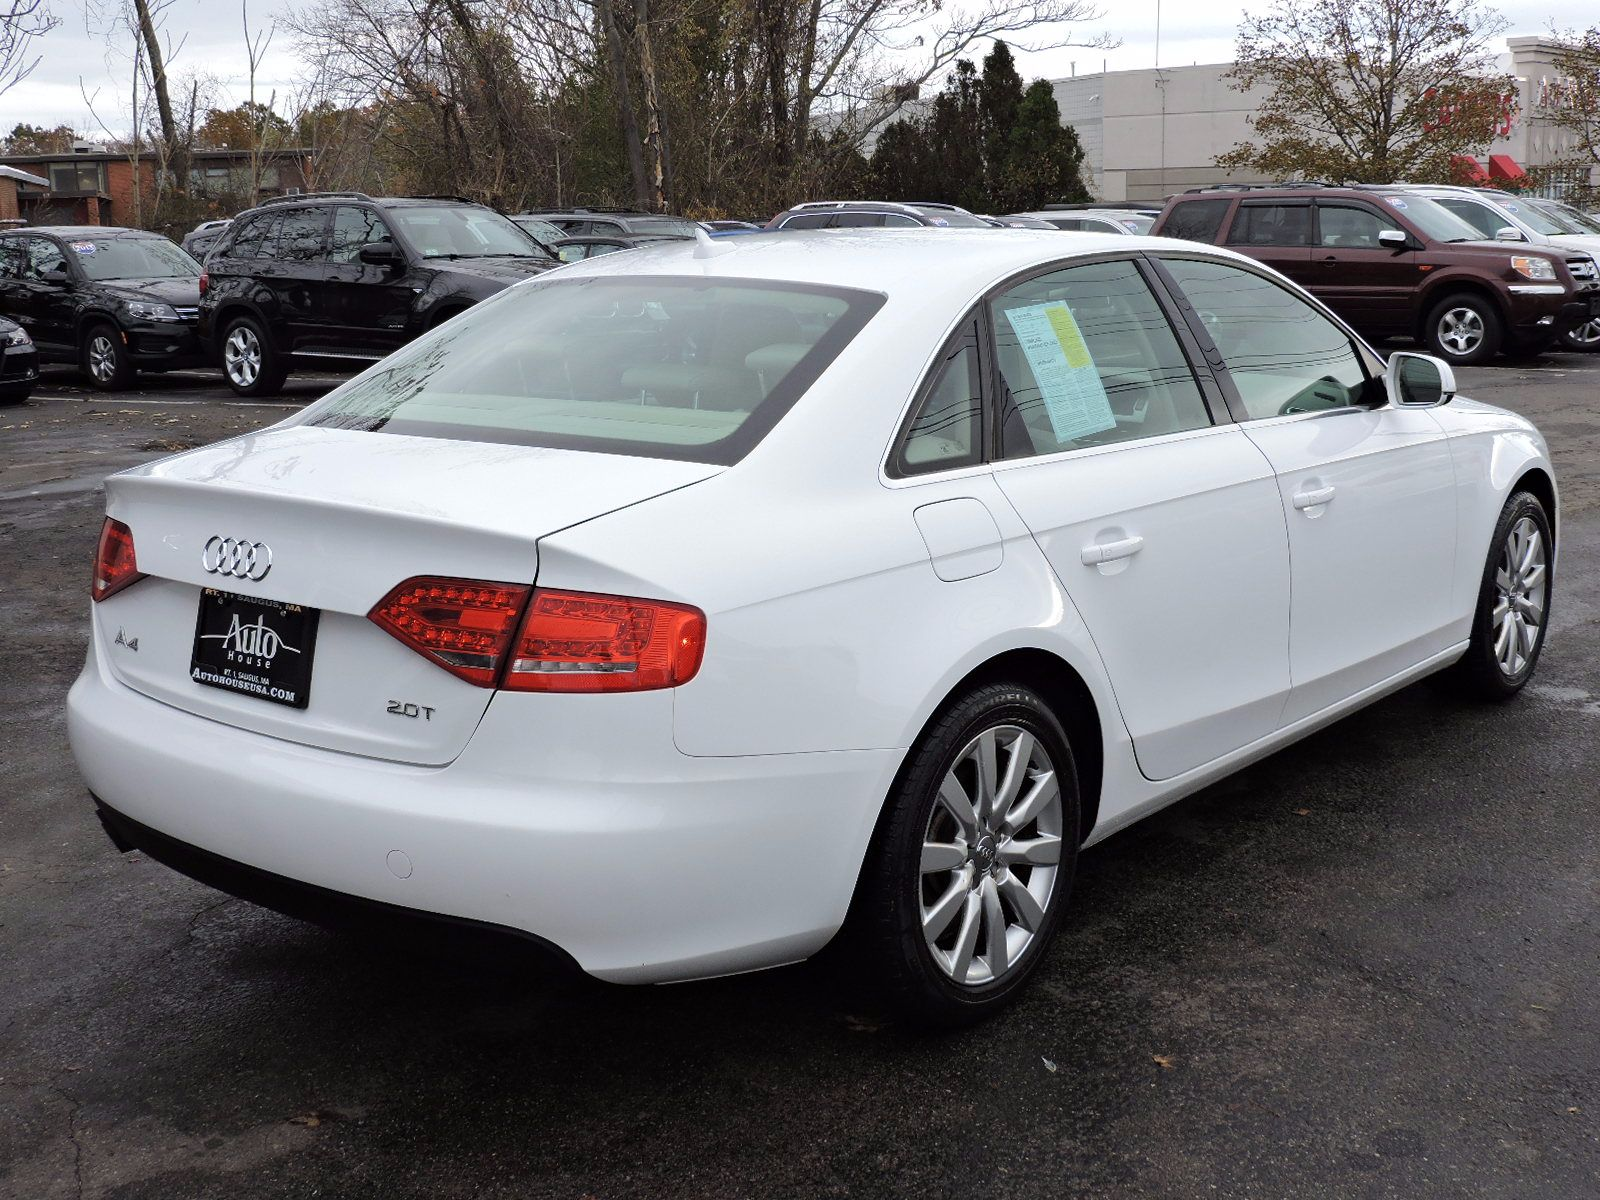 2010 Audi A4 2.0T - Quattro - All Wheel Drive